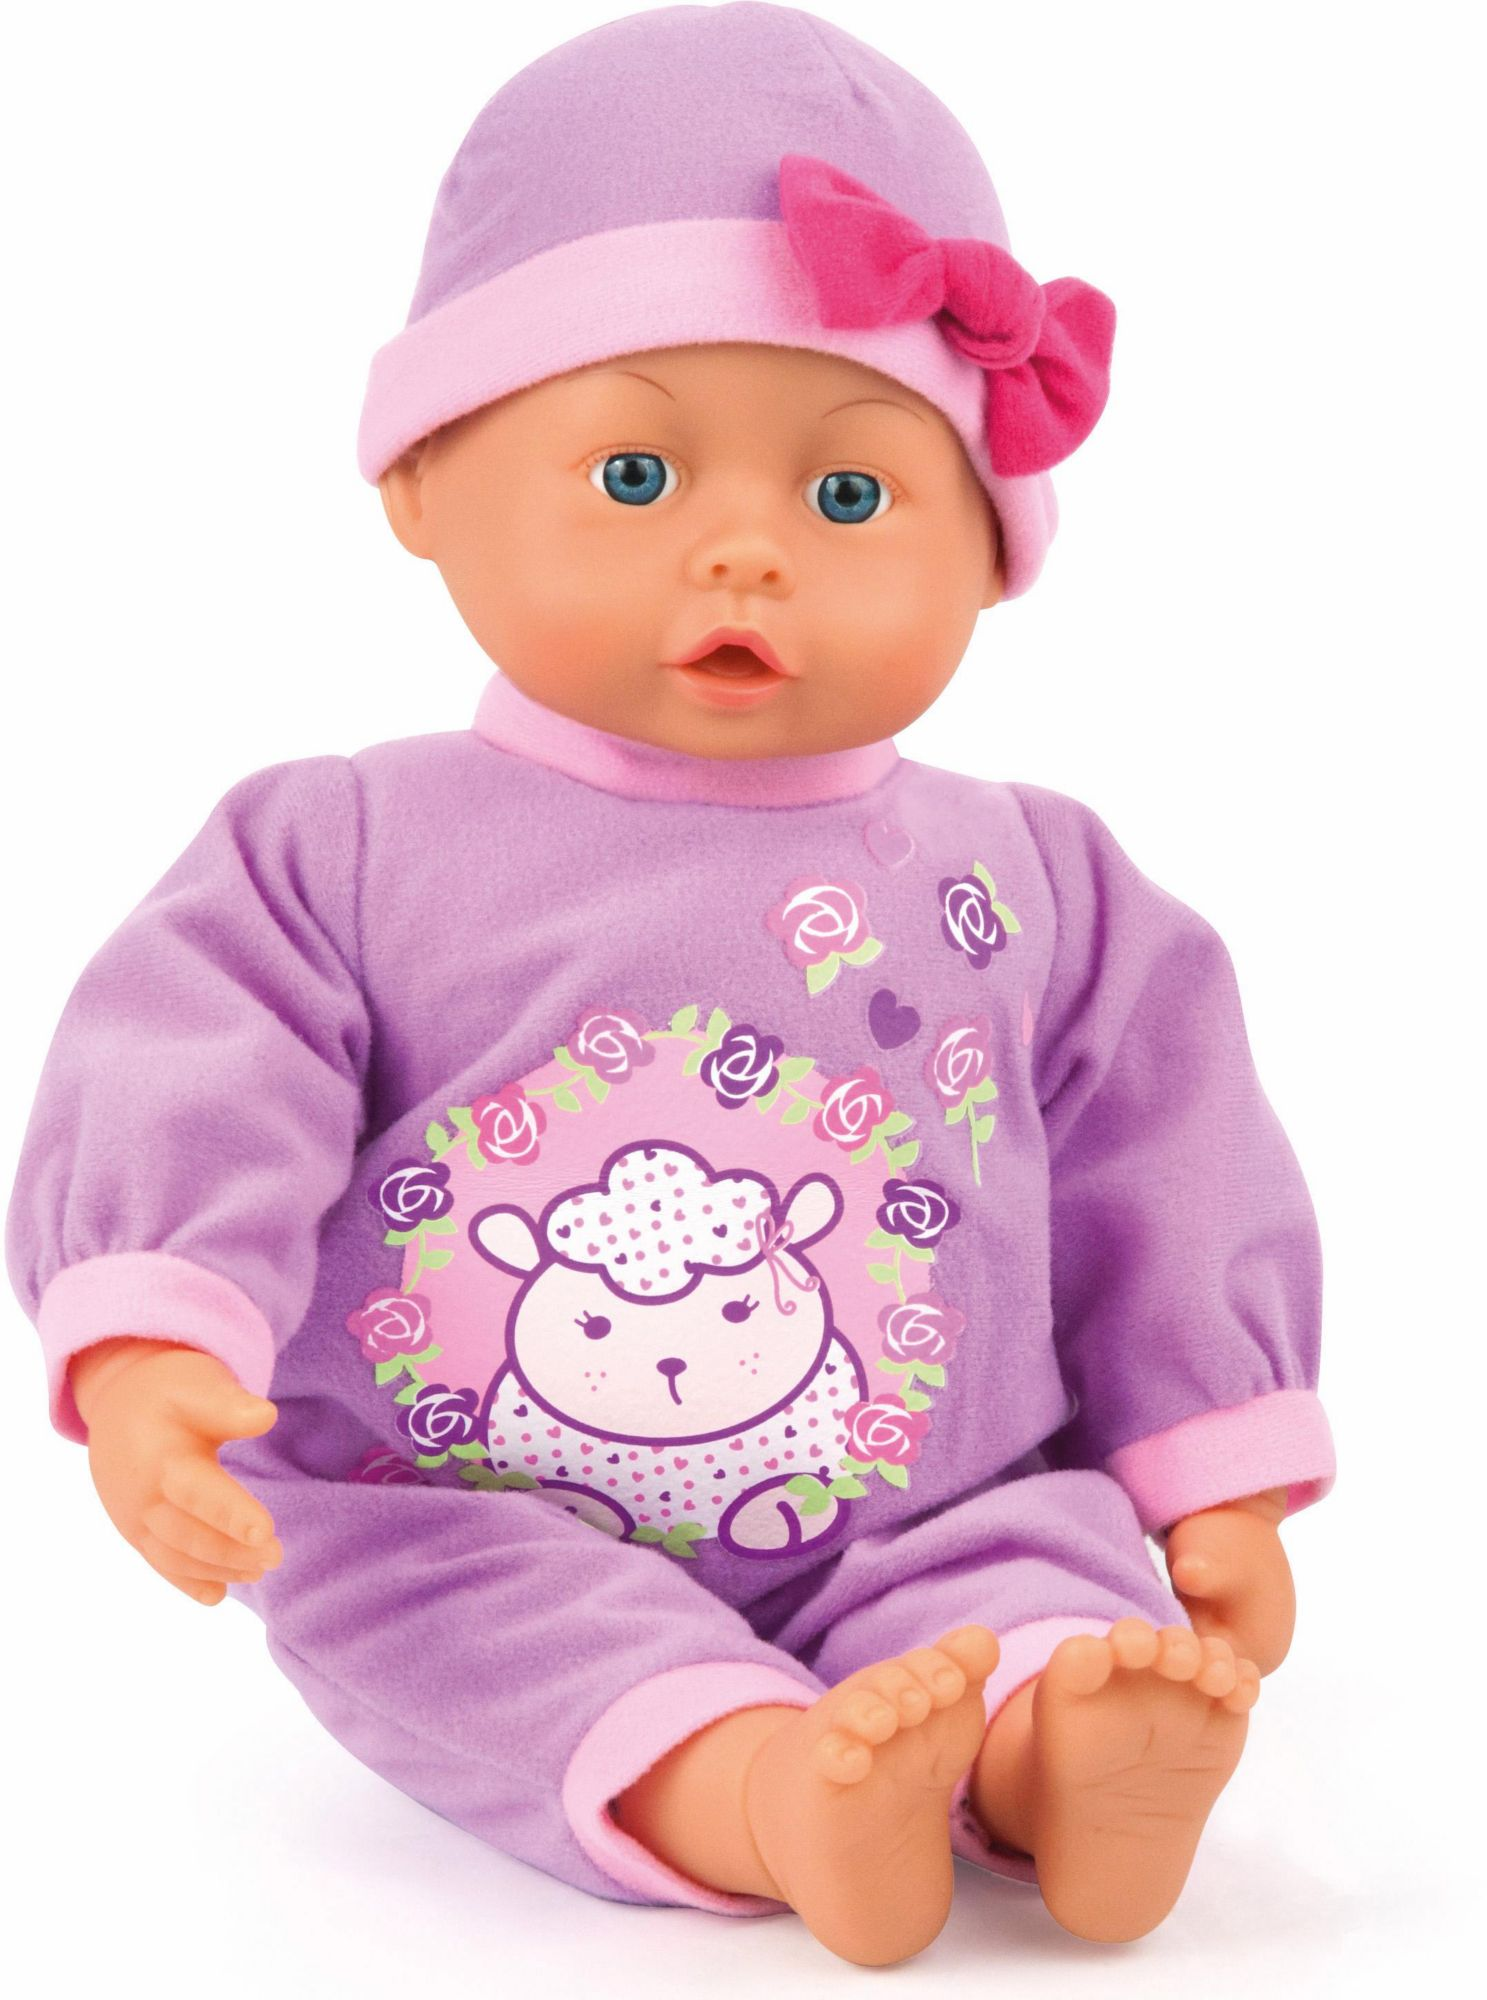 BAYER Bayer Design Babypuppe mit Funktion, »First Words Baby, lila 38 cm«